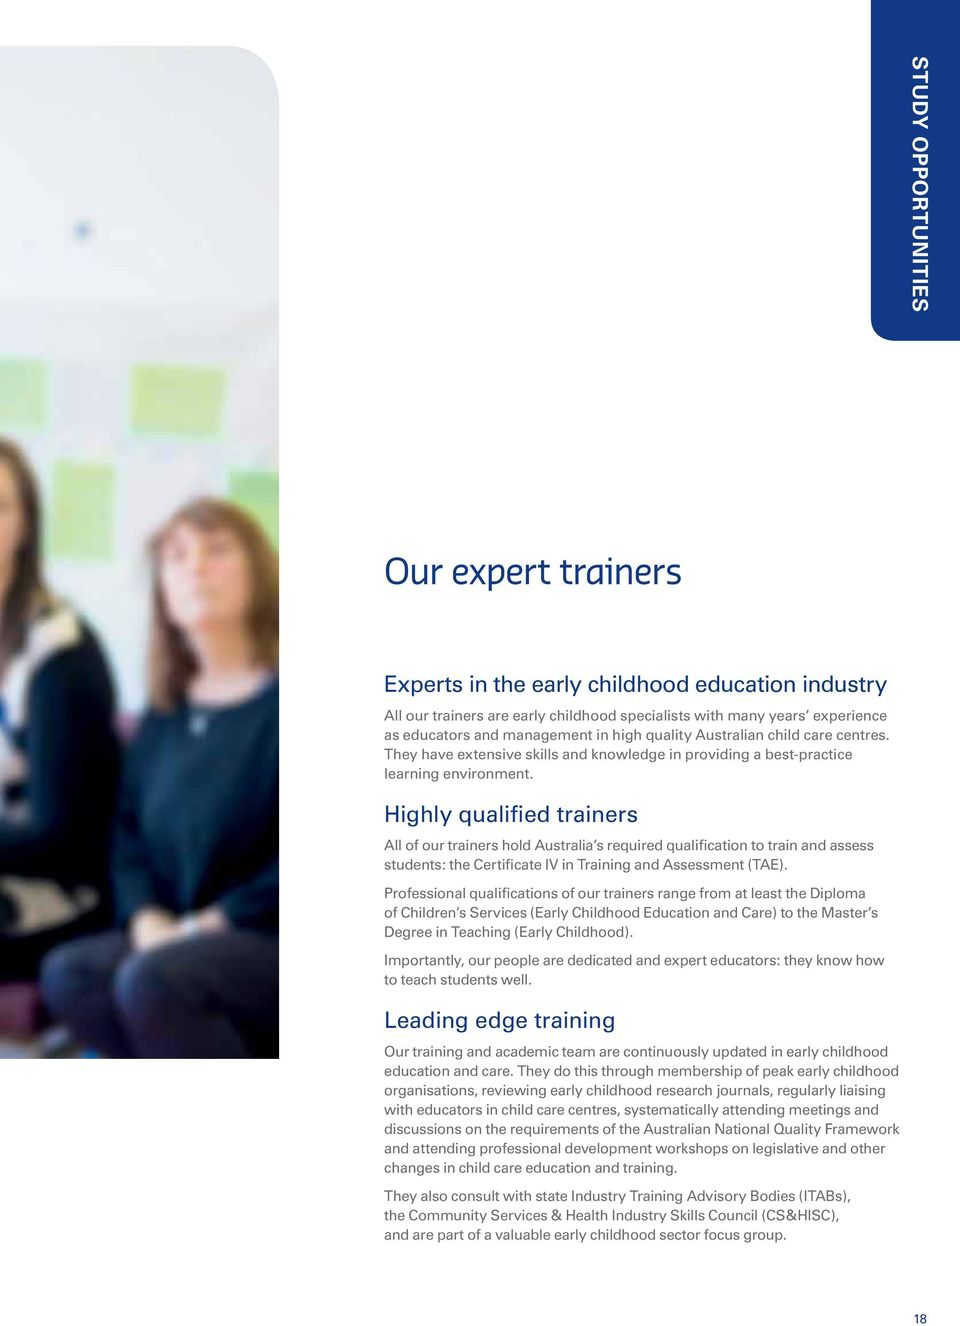 Highly qualified trainers All of our trainers hold Australia s required qualification to train and assess students: the Certificate IV in Training and Assessment (TAE).